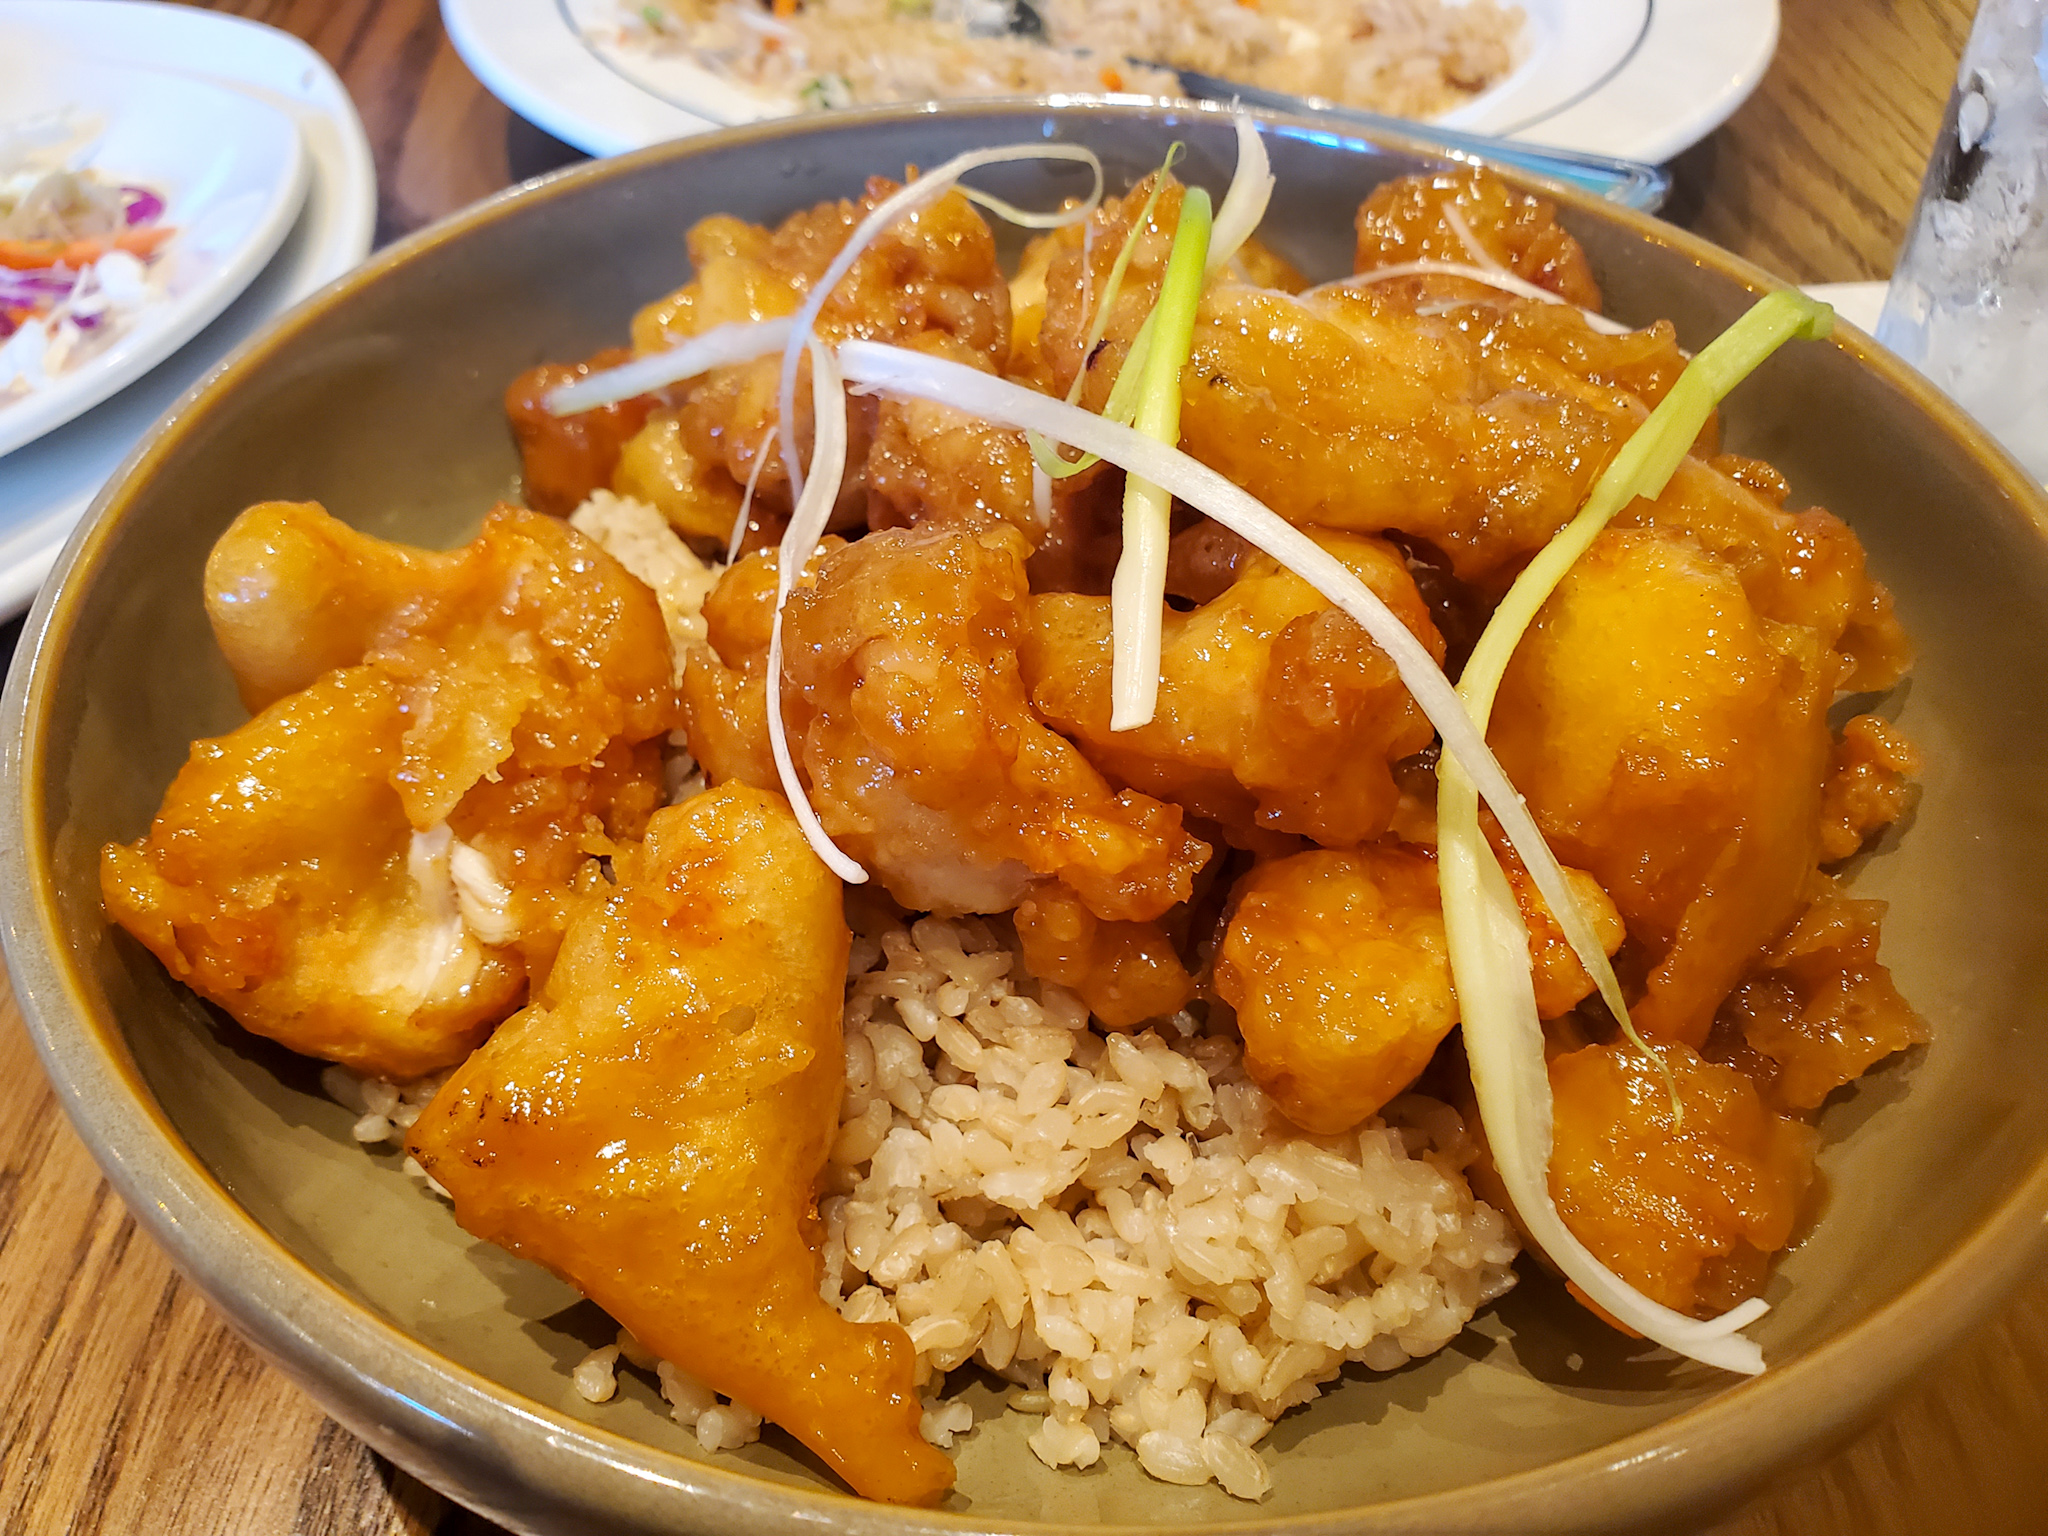 favorite p.f. changs dishes